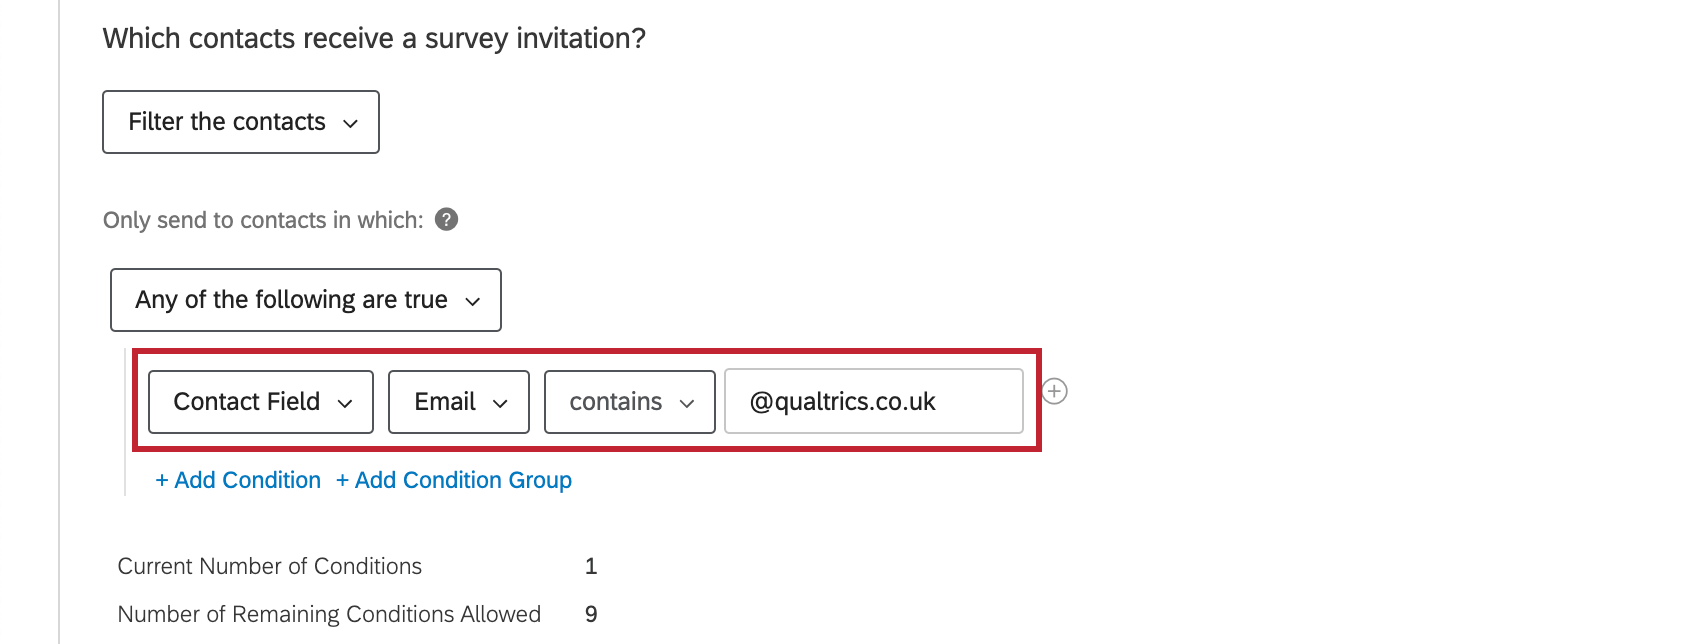 Condition says email address must contain @qualtrics.co.uk